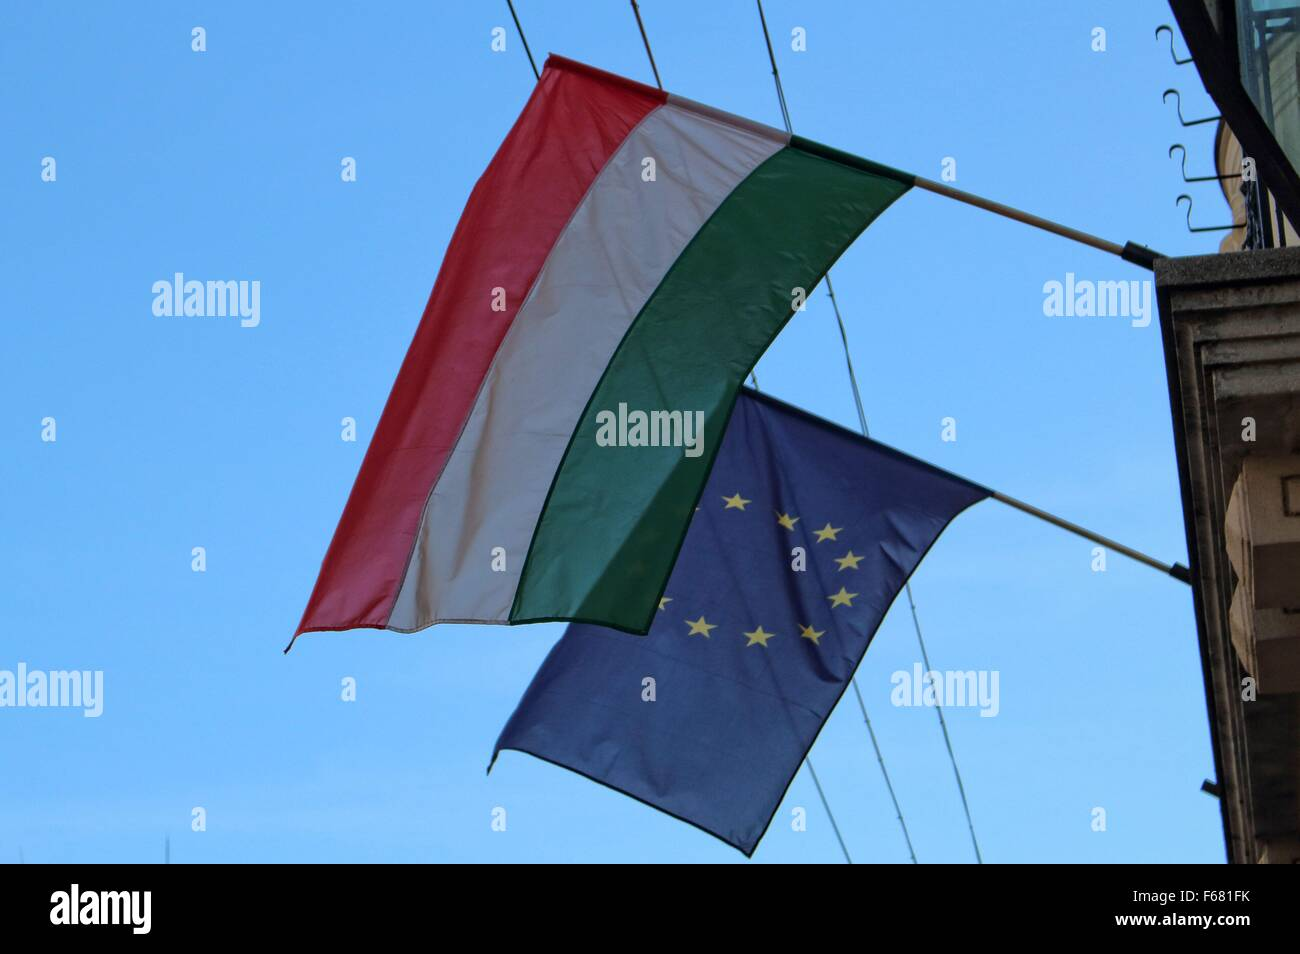 Hungary, Miskolc 13th, Nov. 2015 People enjoy sunny and warm weather in the  northeastern Hungarian City of Miskolc. - Stock Image